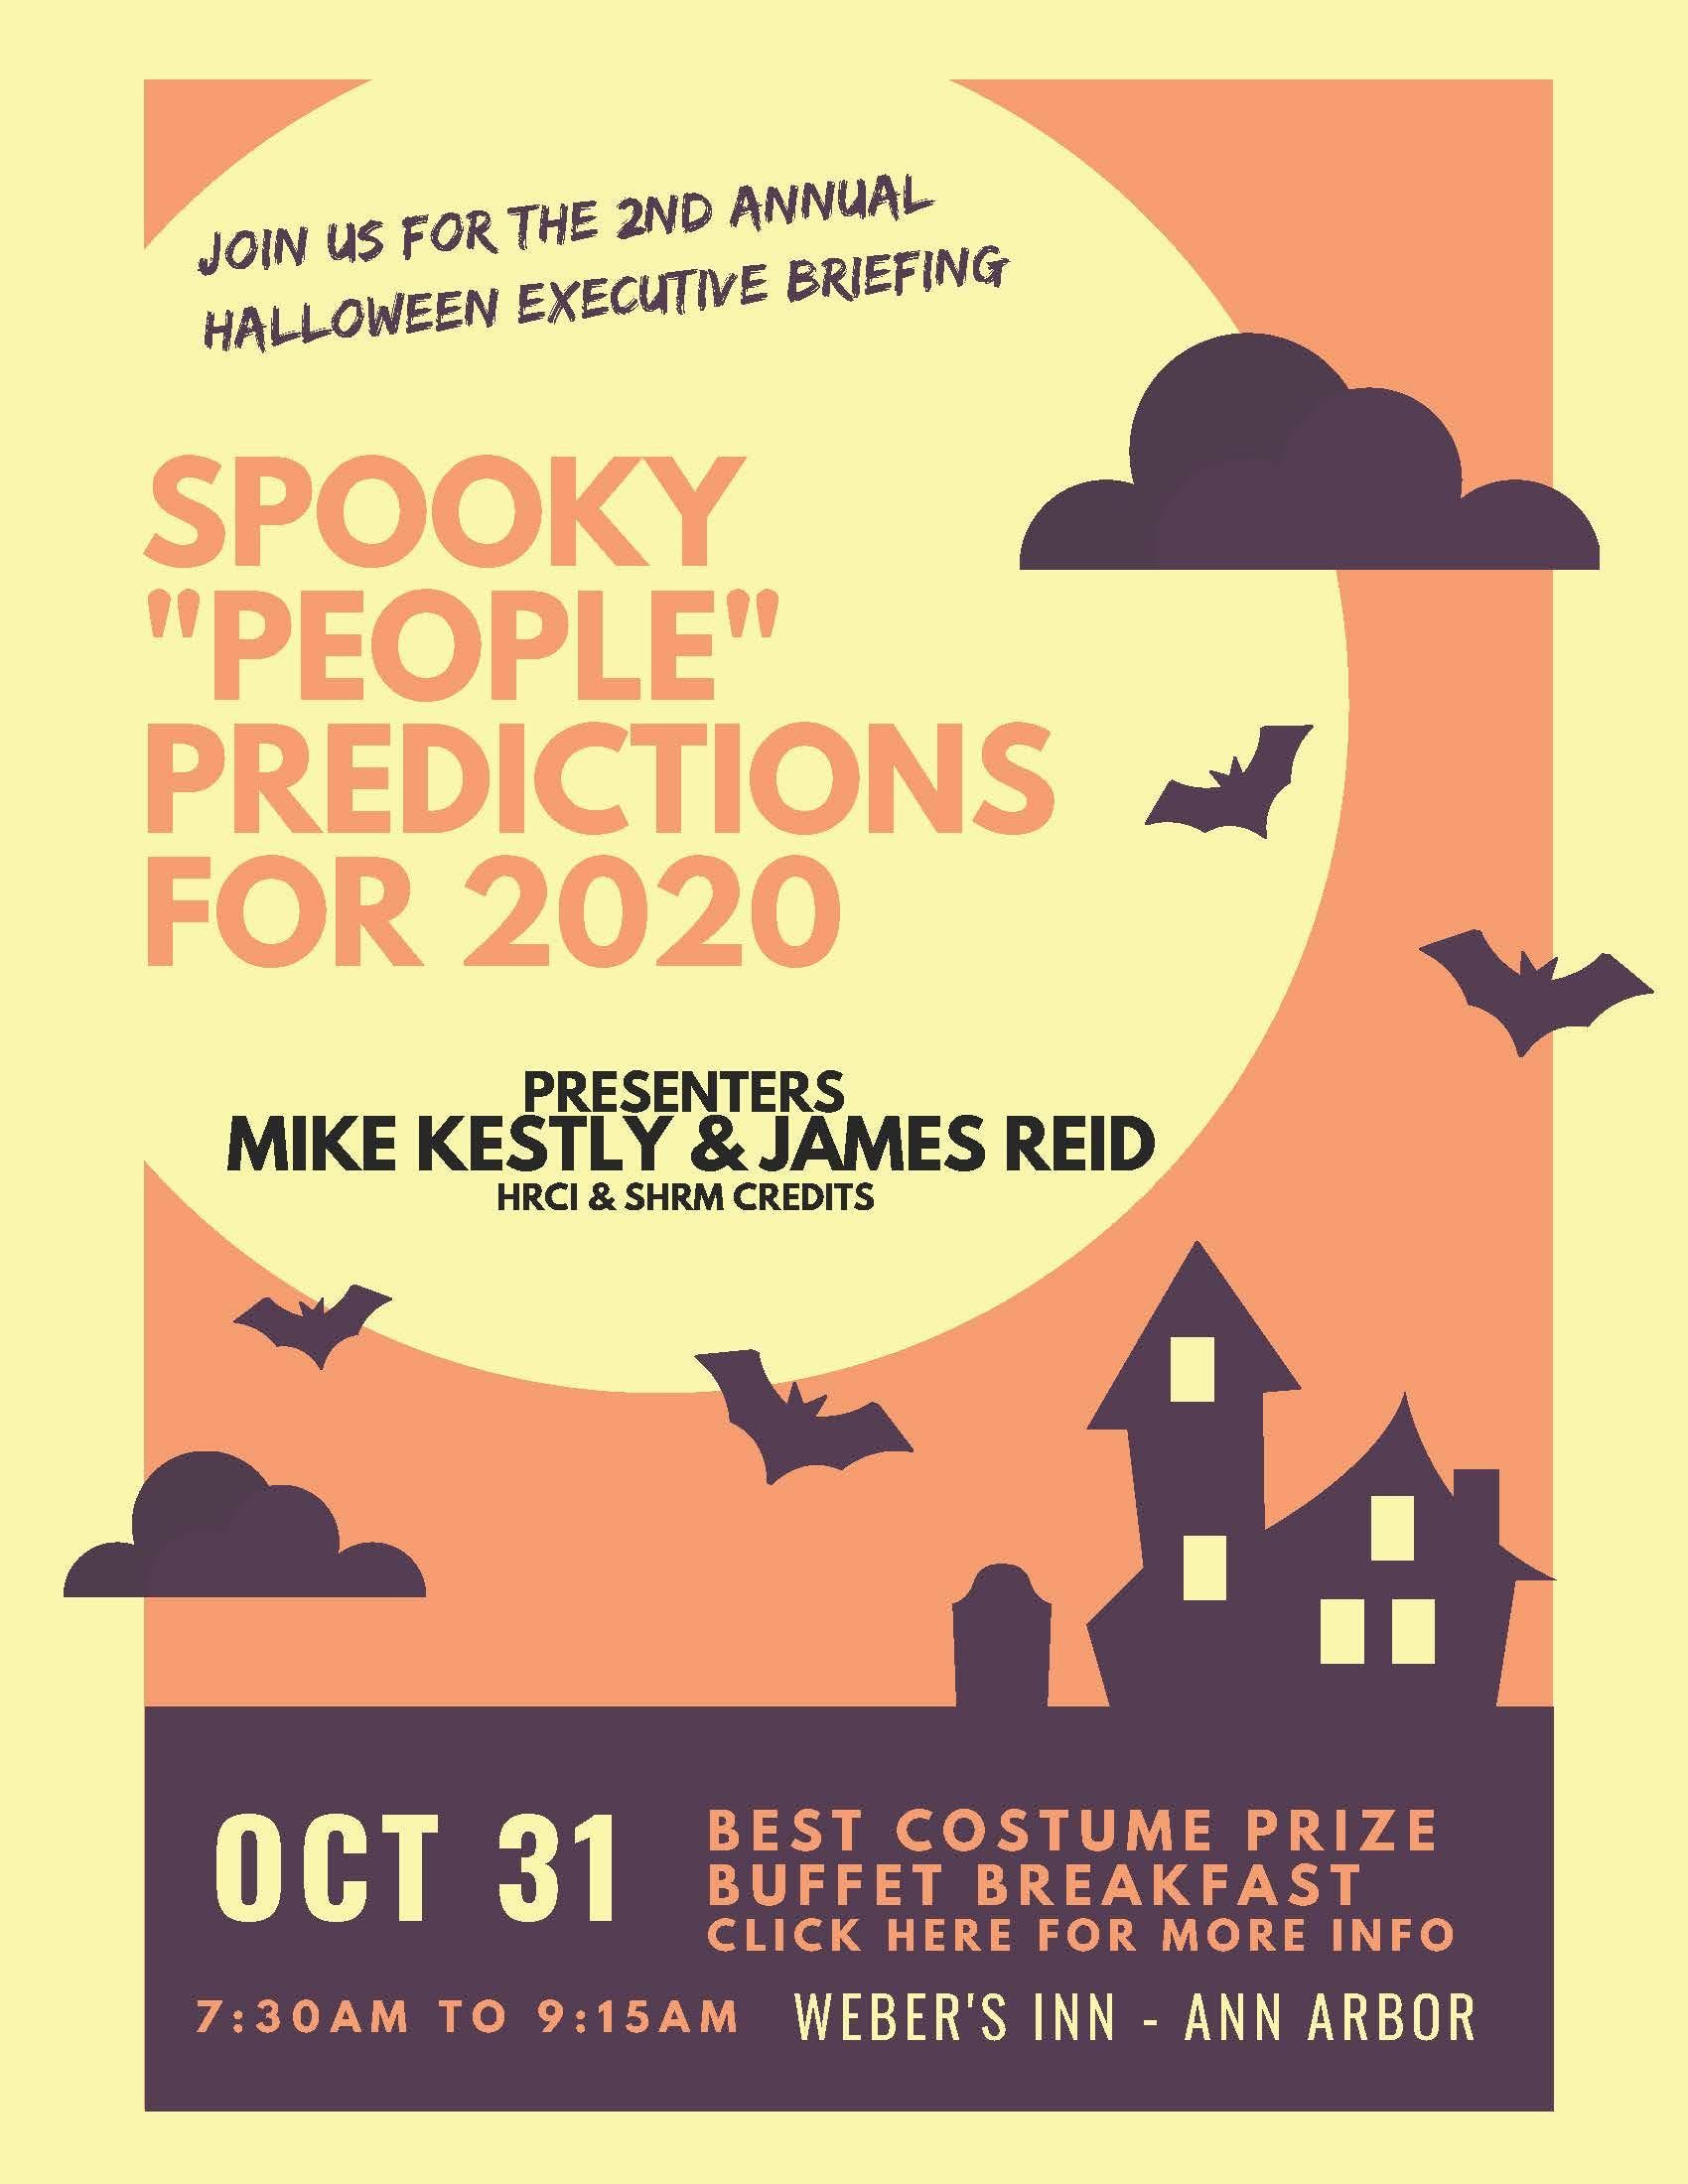 Halloween Ann Arbor 2020 Halloween Executive Briefing – Spooky People Predictions for 2020